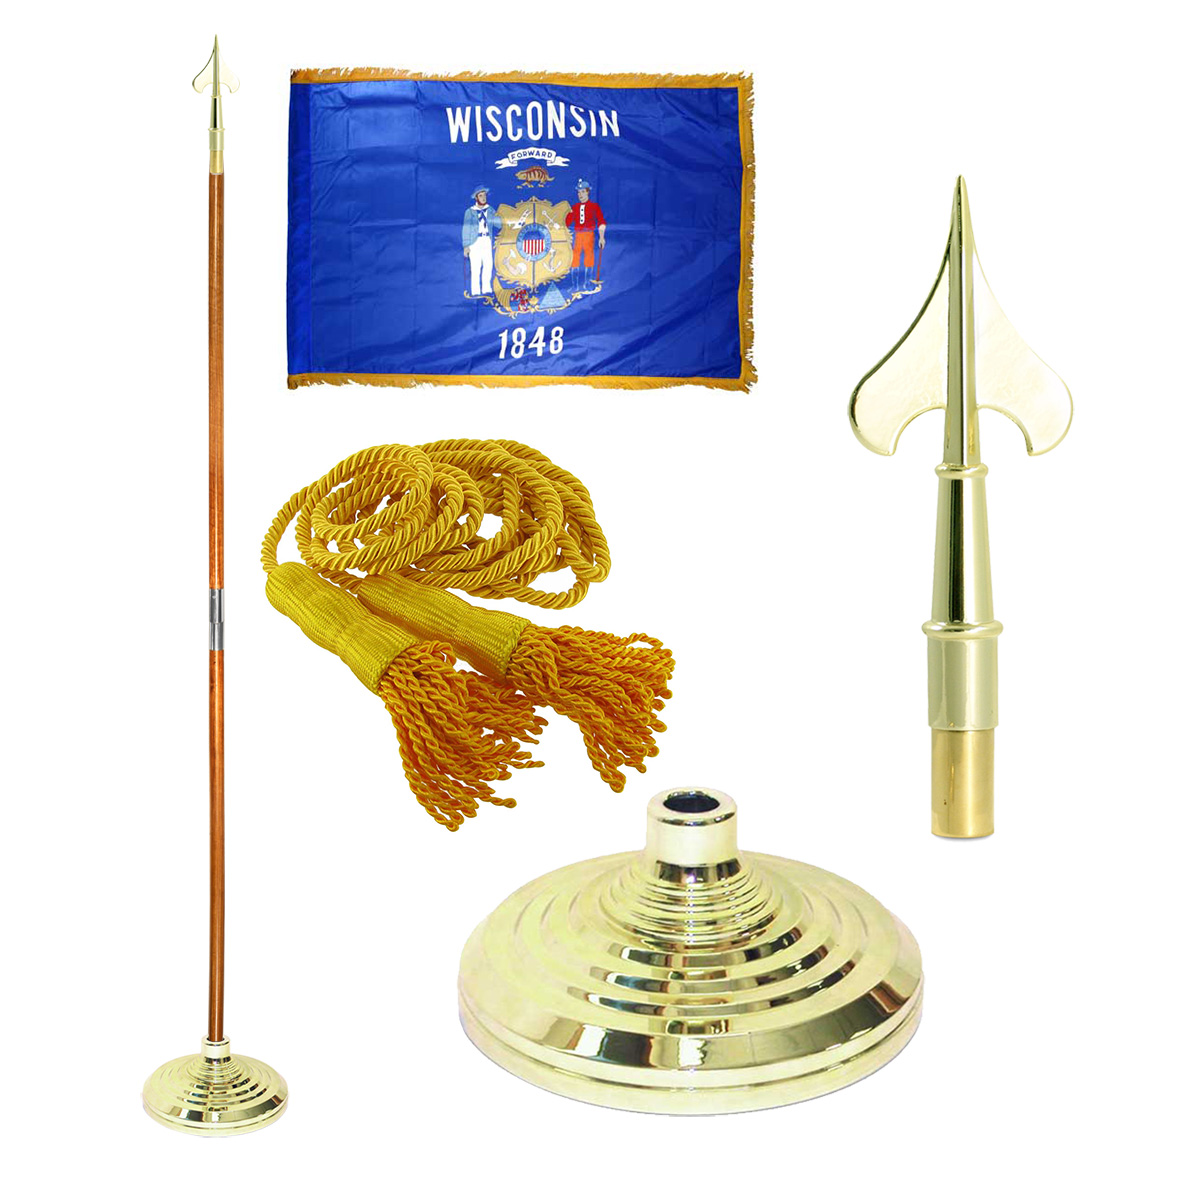 Indoor Wisconsin State Flag Kit - 8ft Pole - Army Spear